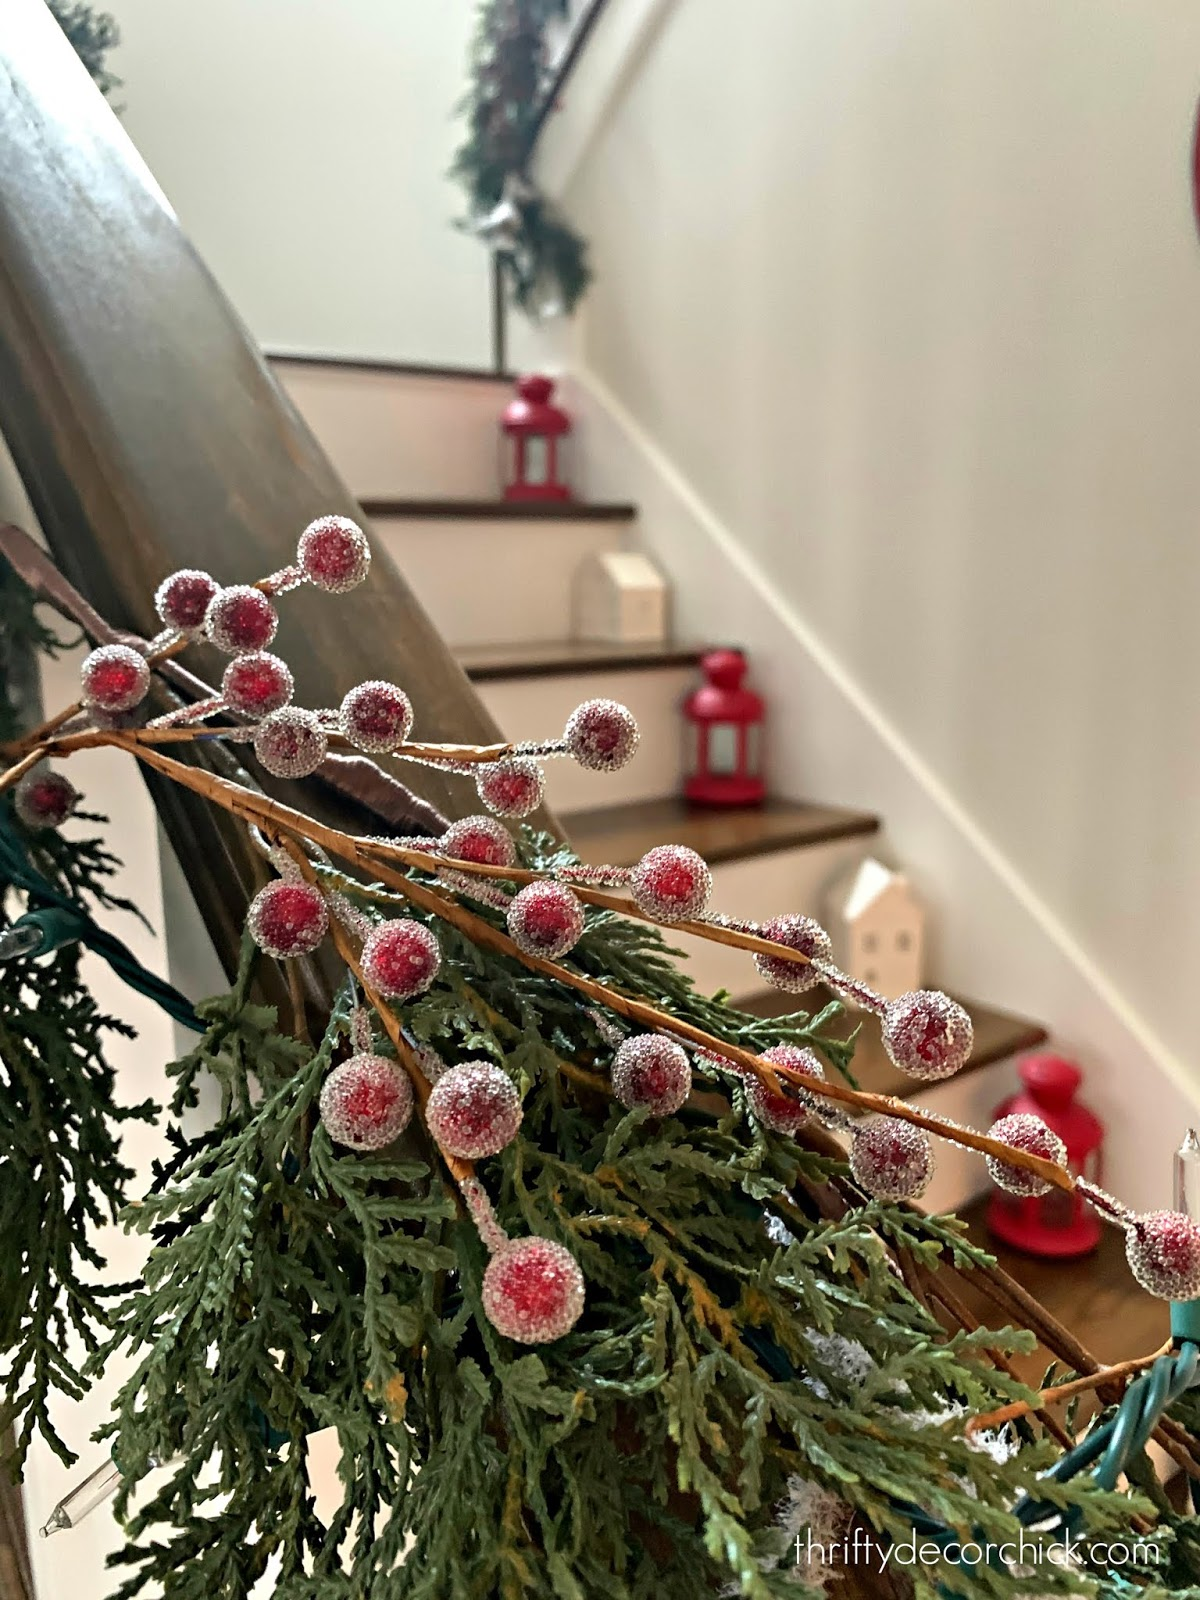 Filling stairway garland with berries and greenery